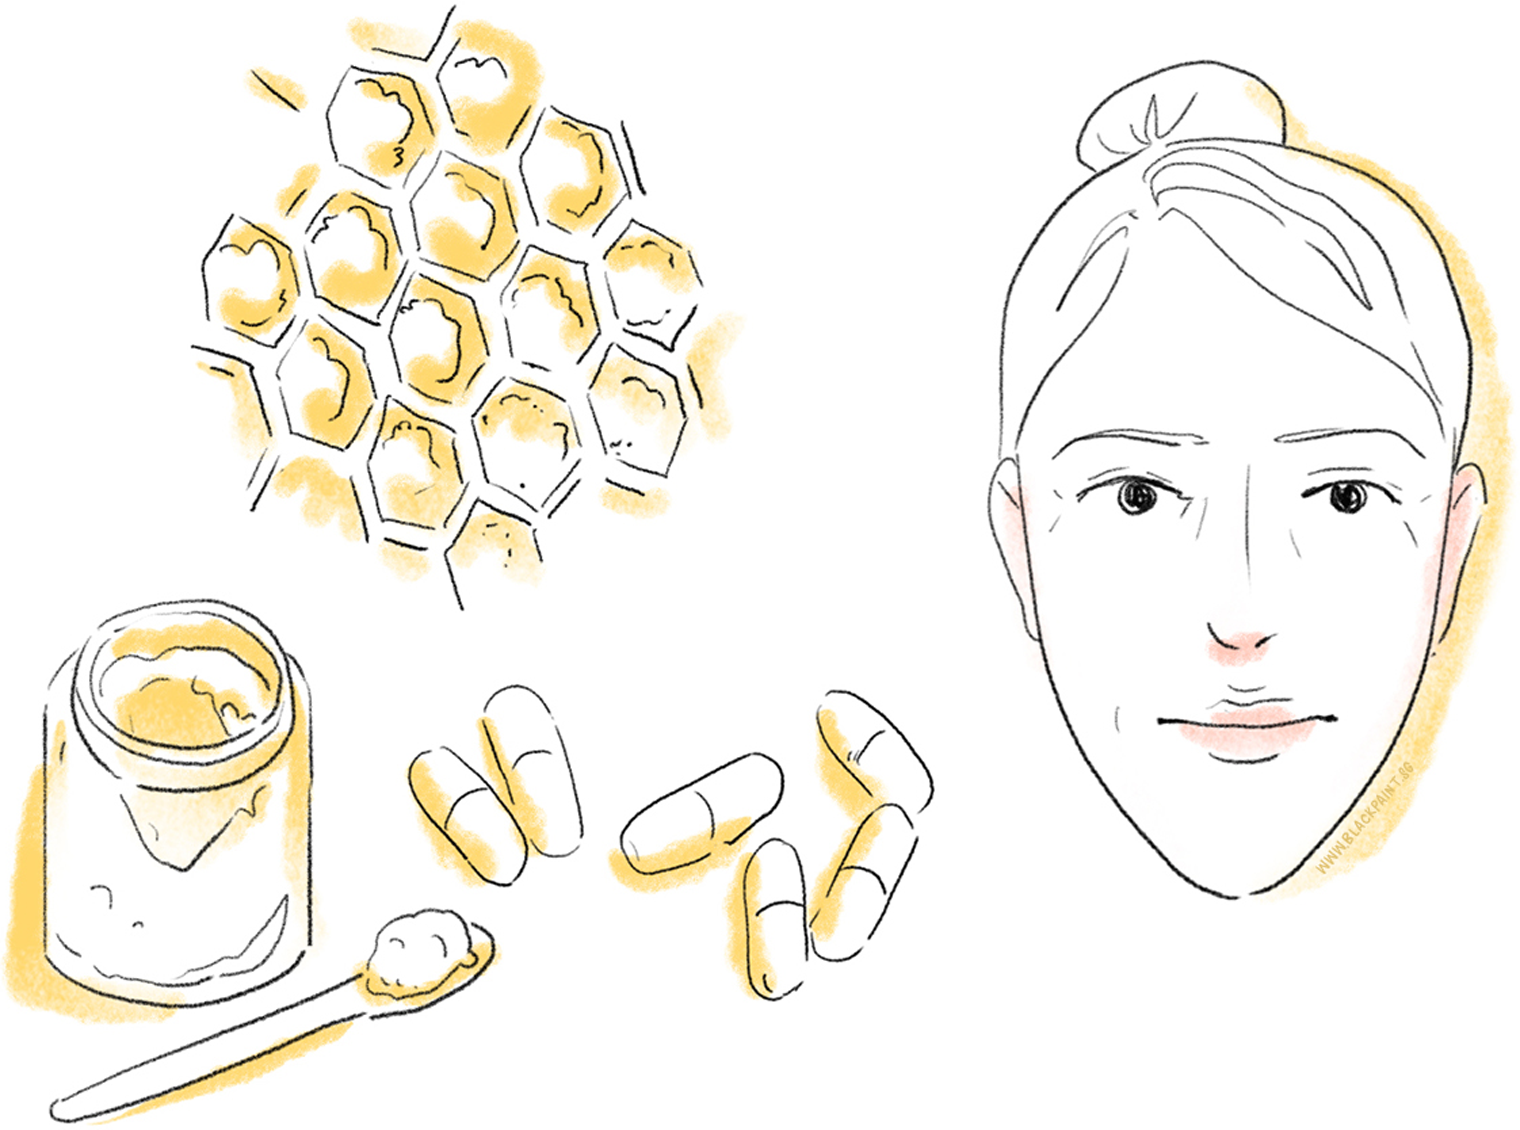 Royal jelly has been well known as an ingredient for anti-aging